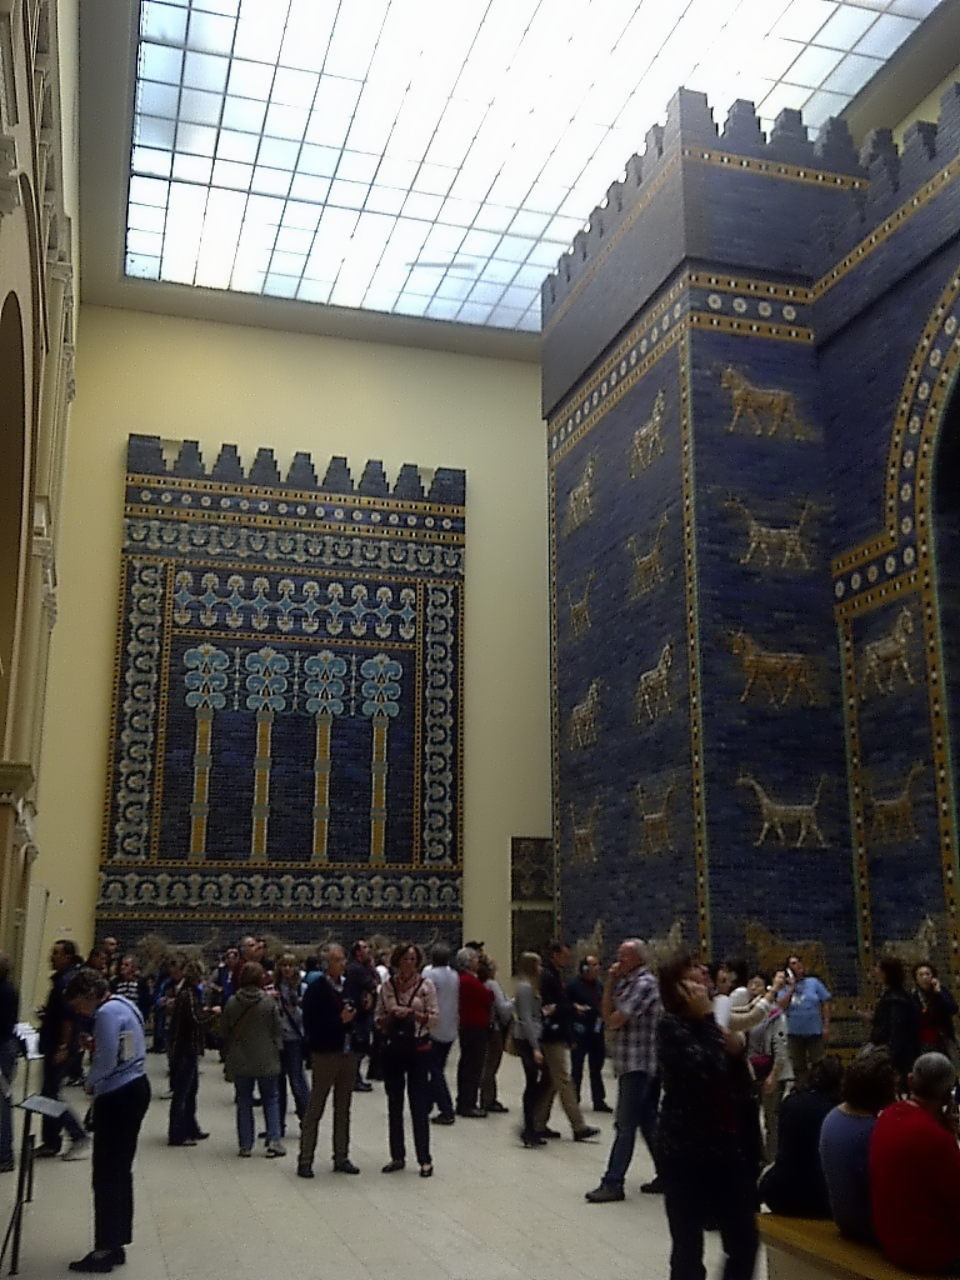 Ishtar Gate, tower and wall